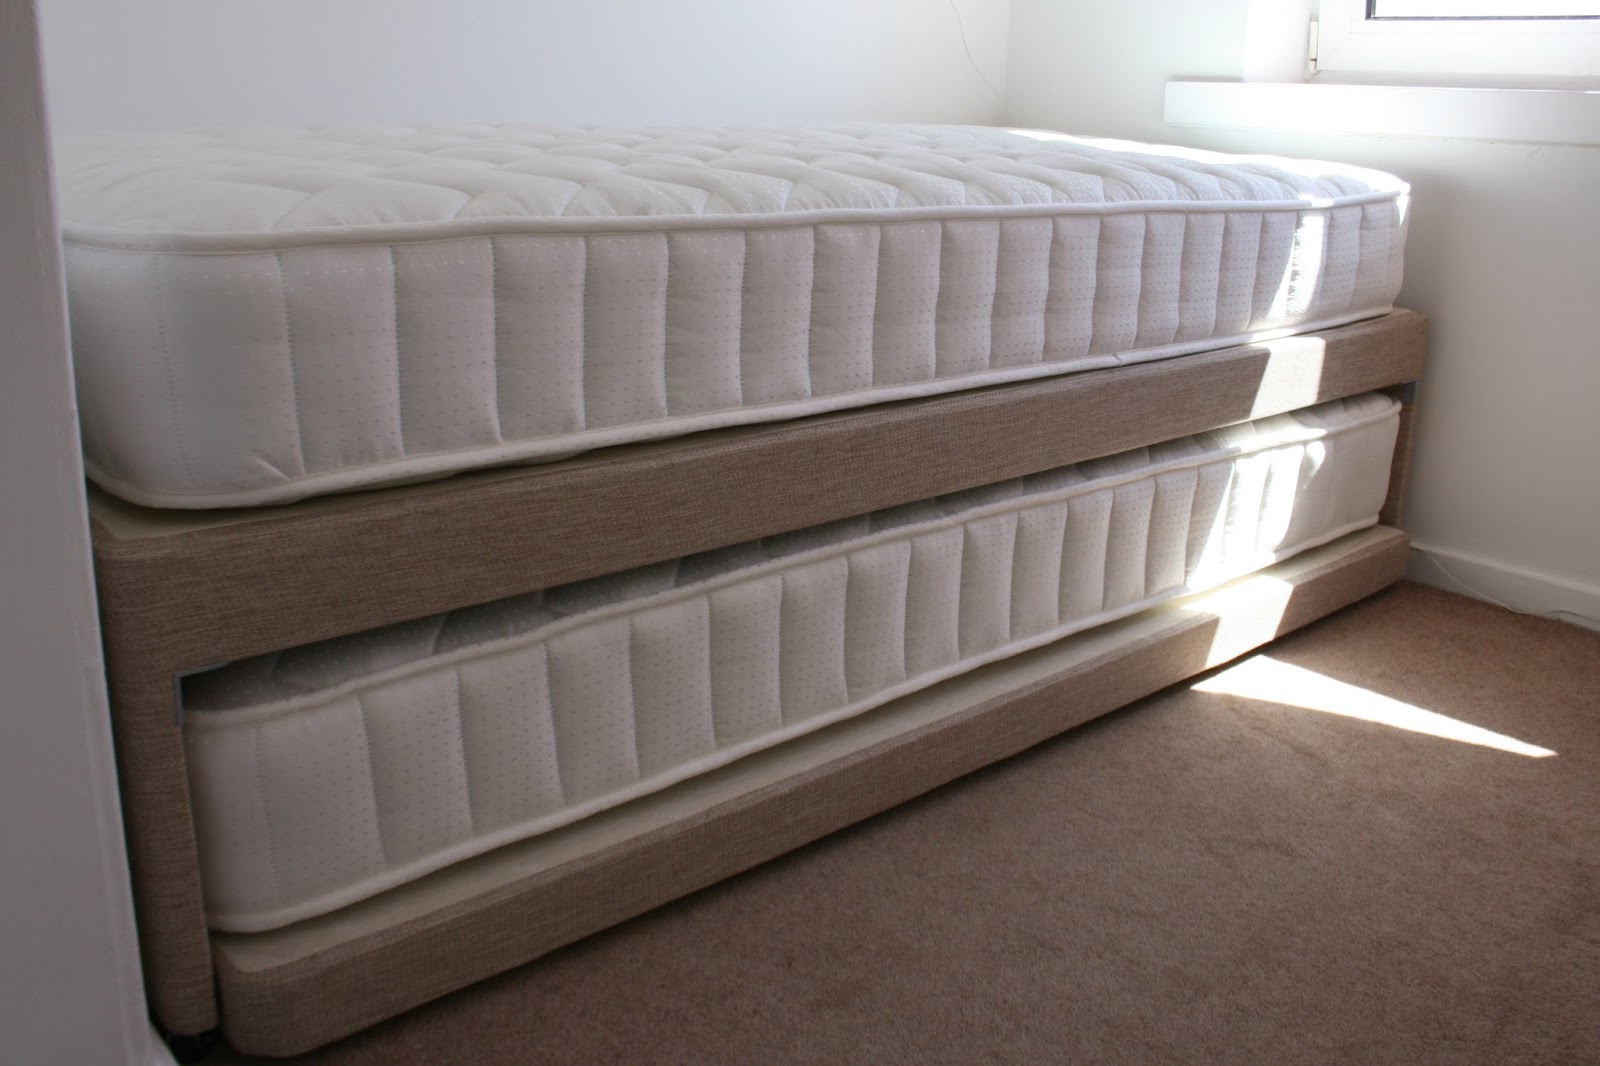 Double Bed With White Mattress For Guest Bed Solutions  Guest Bed Solutions  Ideas HomesFeed. Guest Mattress Ideas